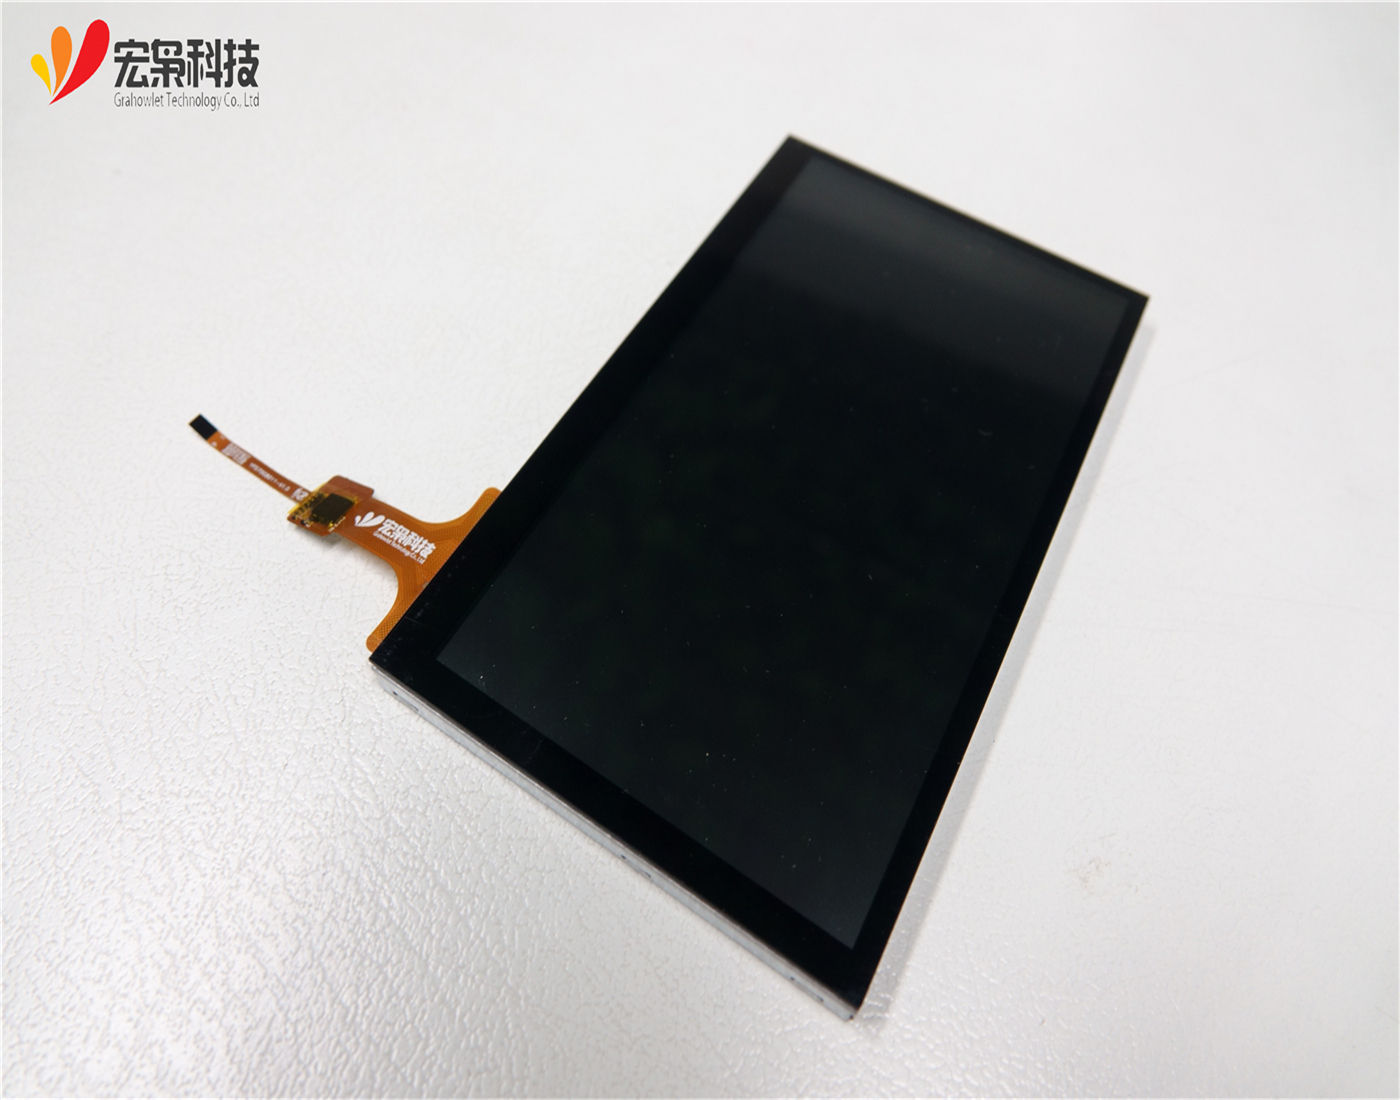 Custom size IIC/USB 5,6, 7,8, 9,101 inch capacitieve touchscreen en LCD display module